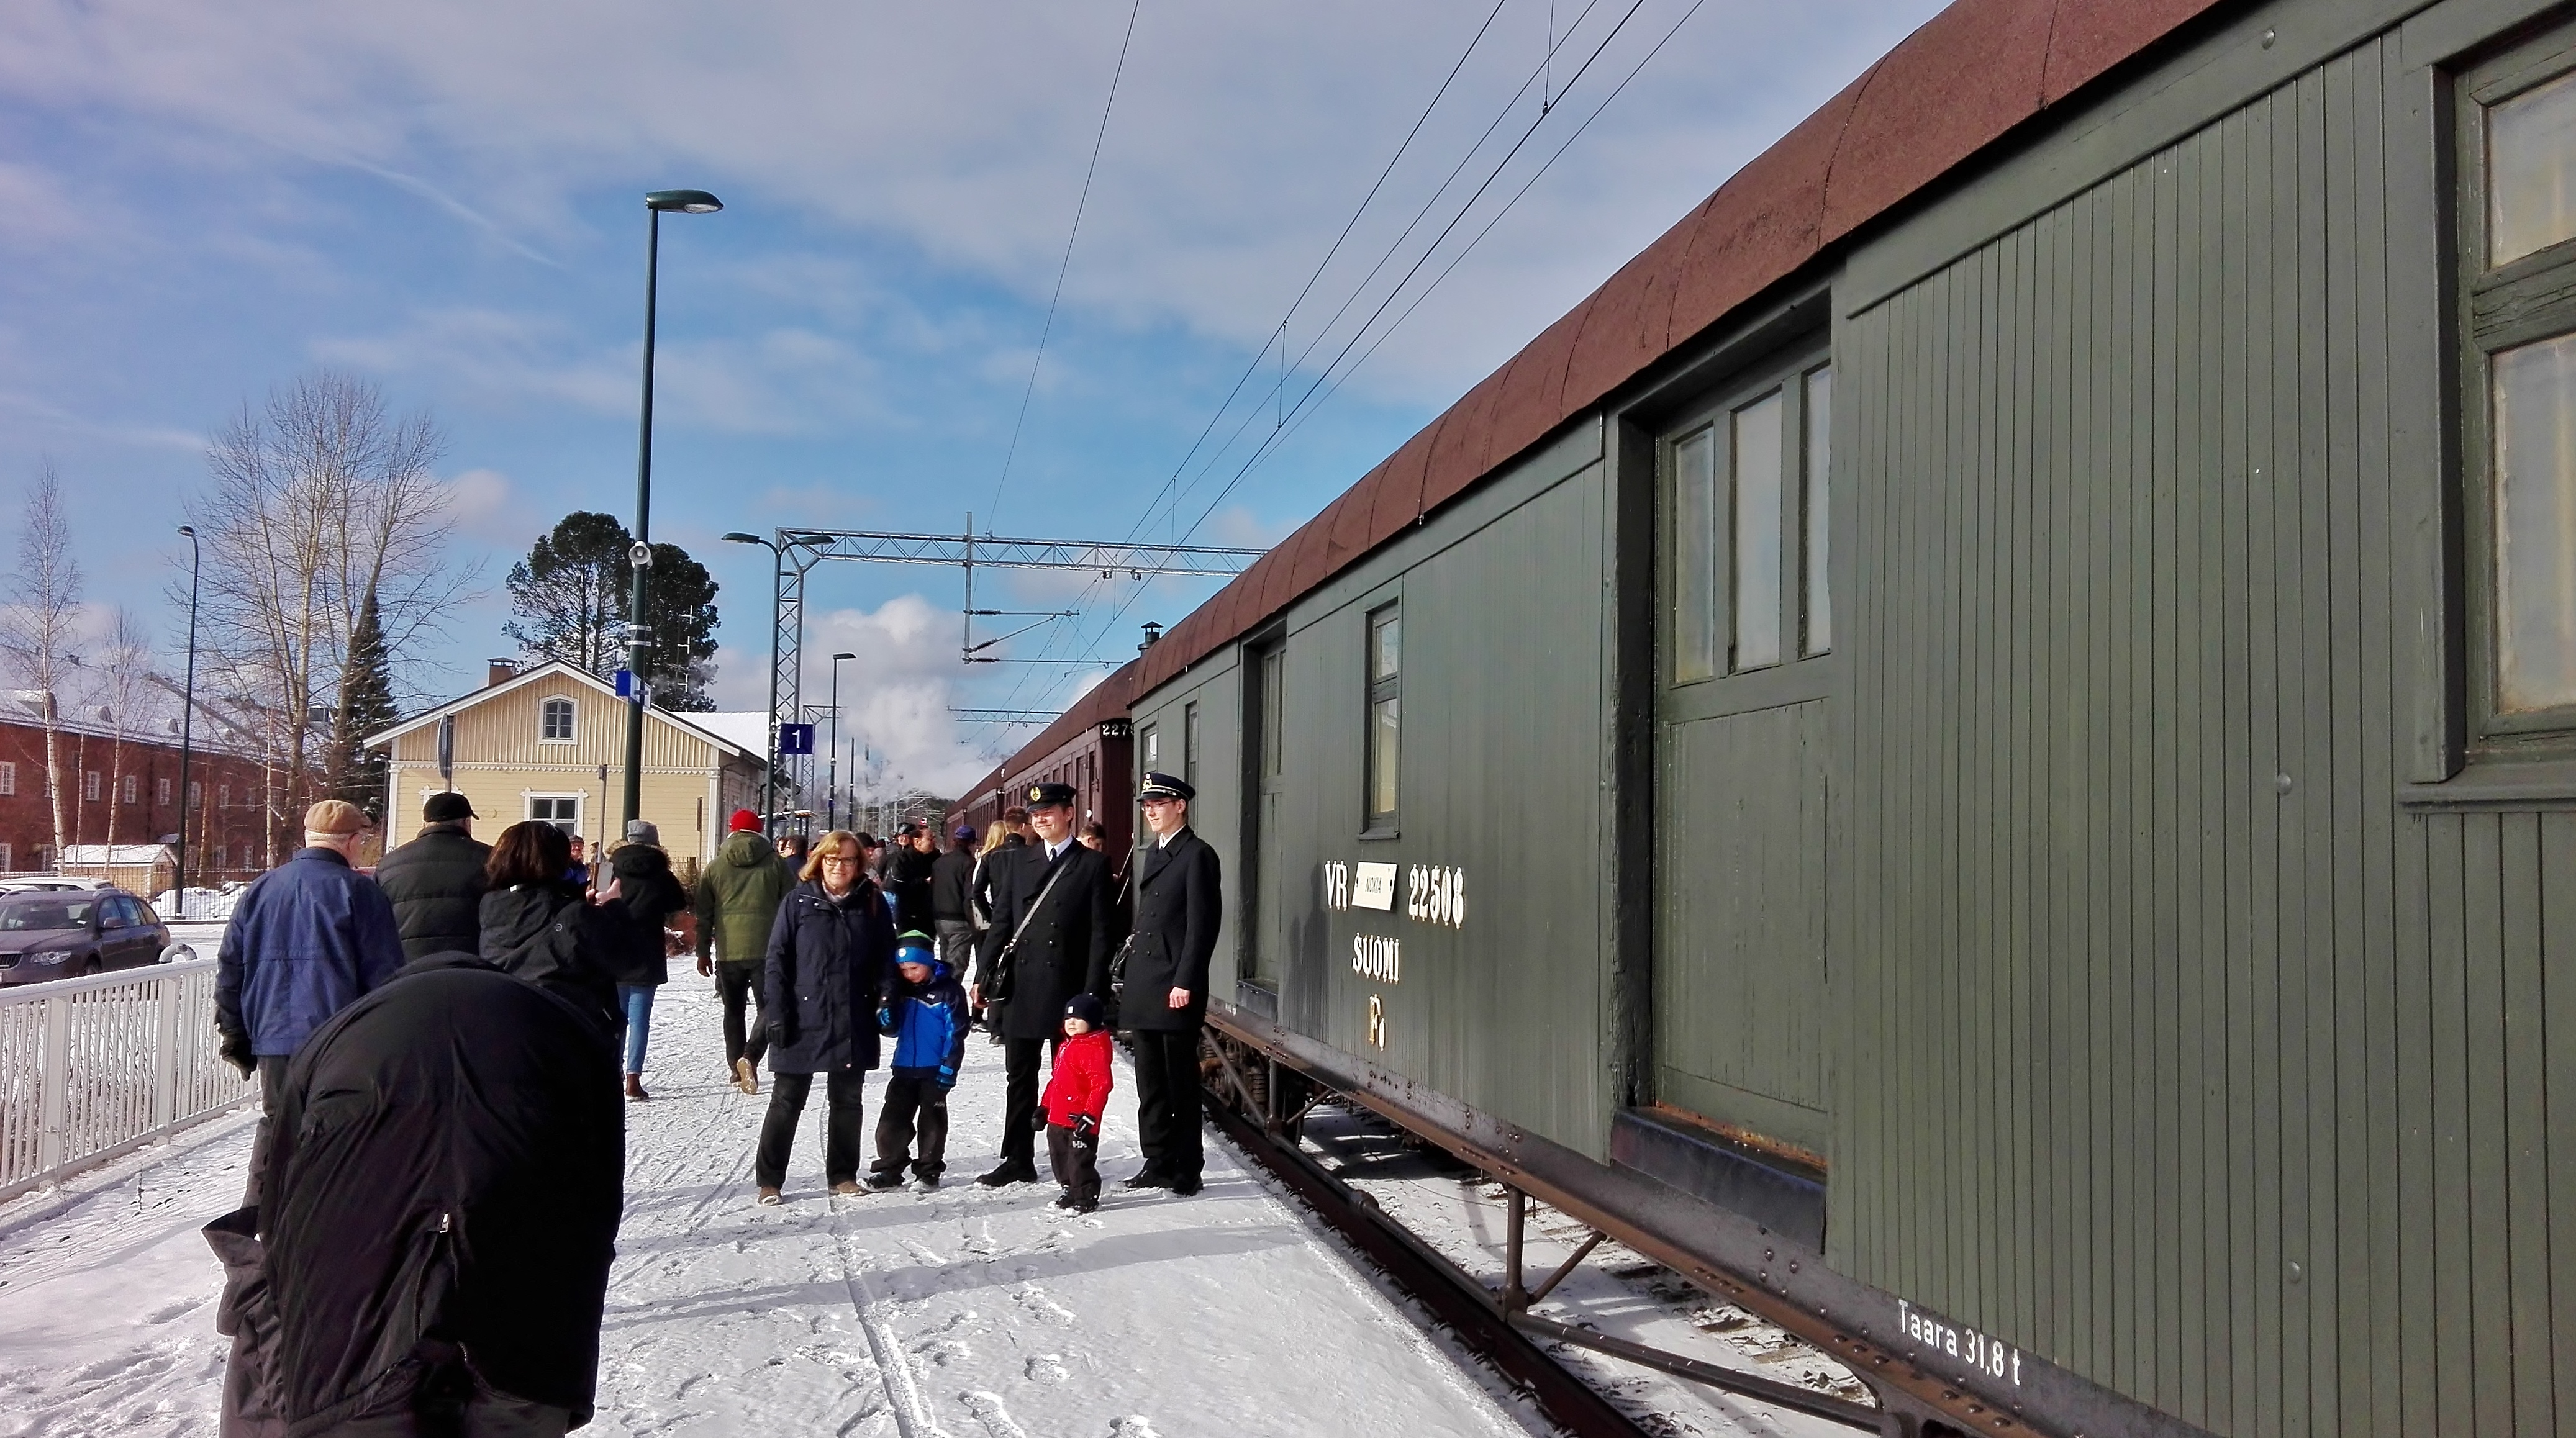 Siuro railway station 16th April 2017 Easter steam train Nokia-Tampere 1.jpg